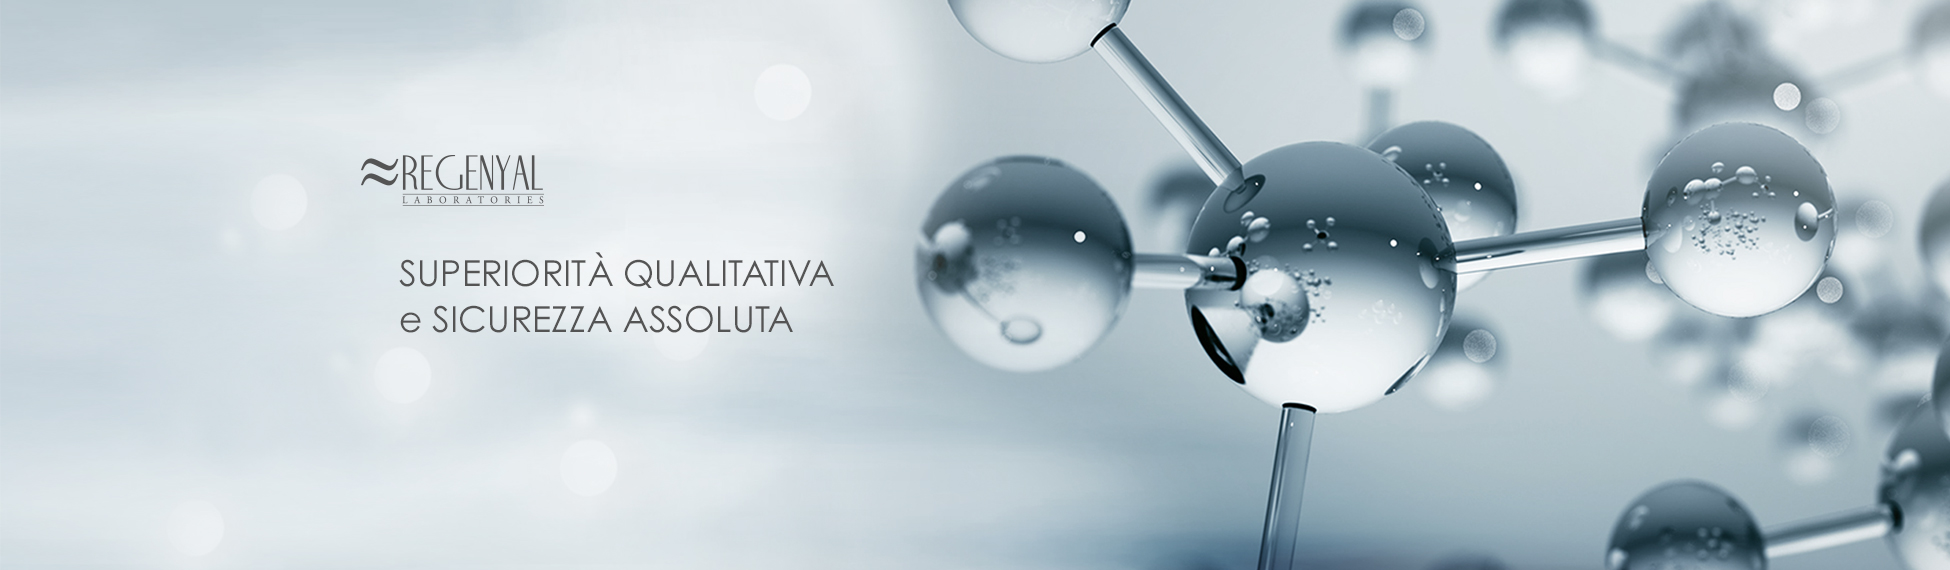 regenyal laboratories, superiorità qualitativa e sicurezza assoluta